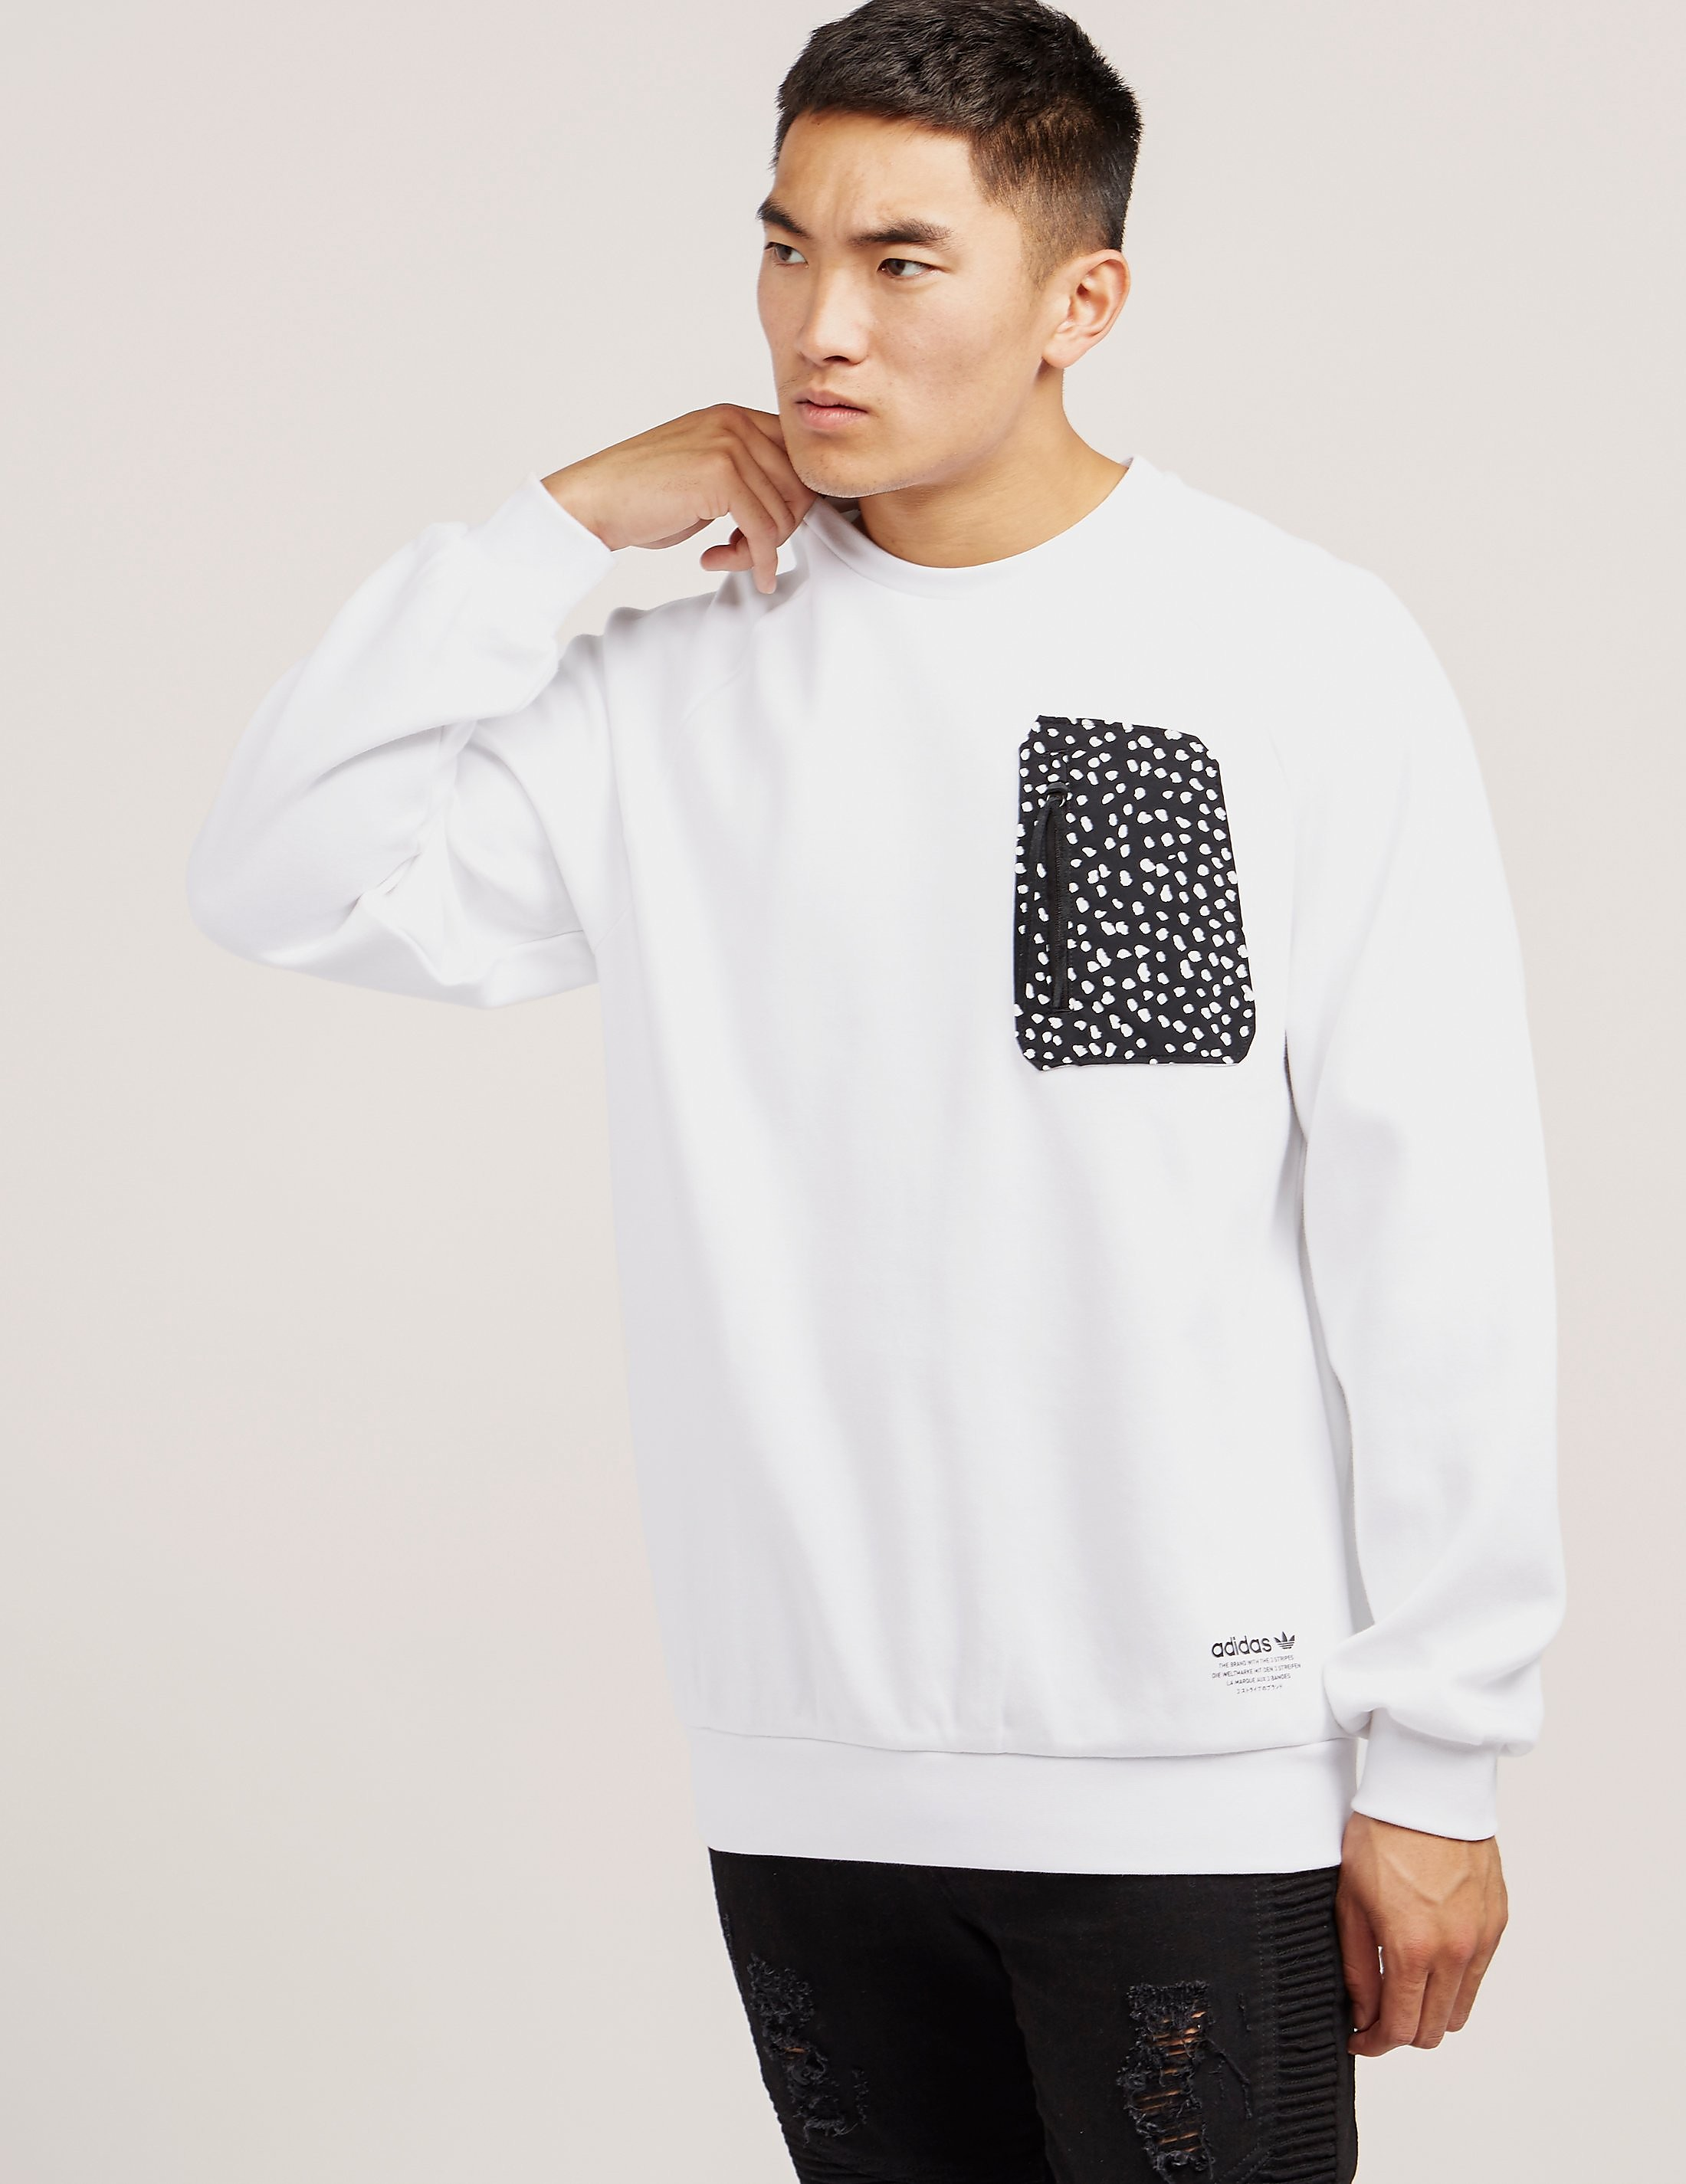 adidas Originals NMD Pocket Sweatshirt